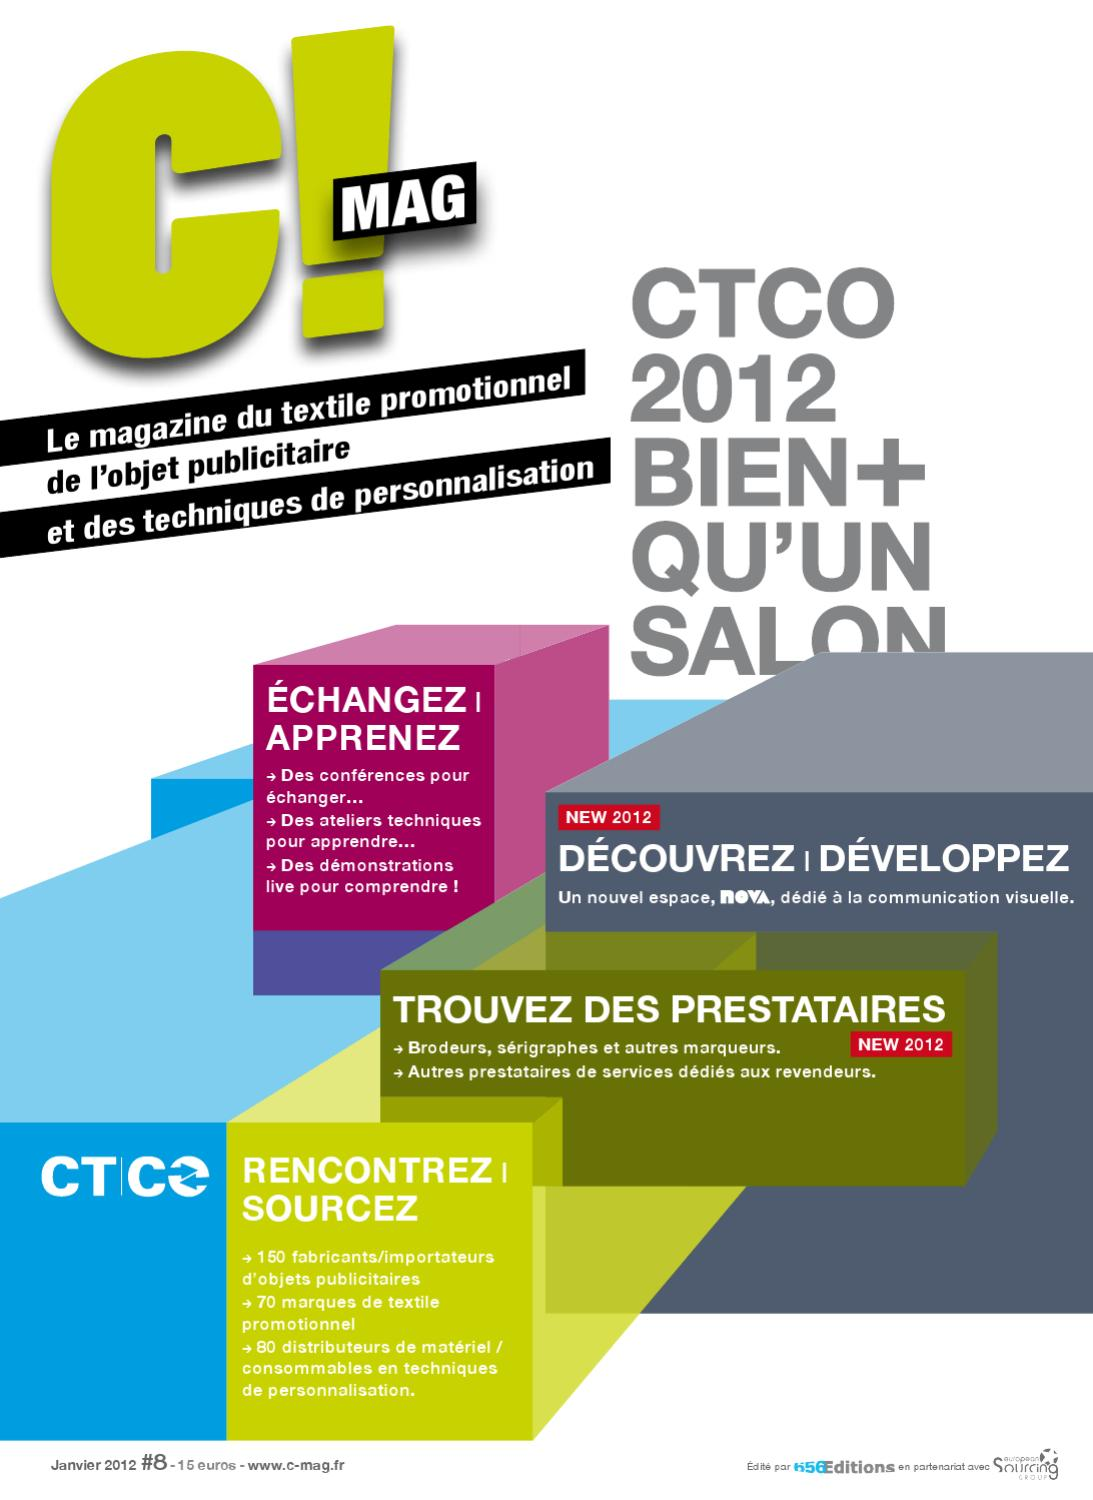 d573c20a227cd C!mag #8 - Spécial CTCO 2012 by 656 Editions - issuu